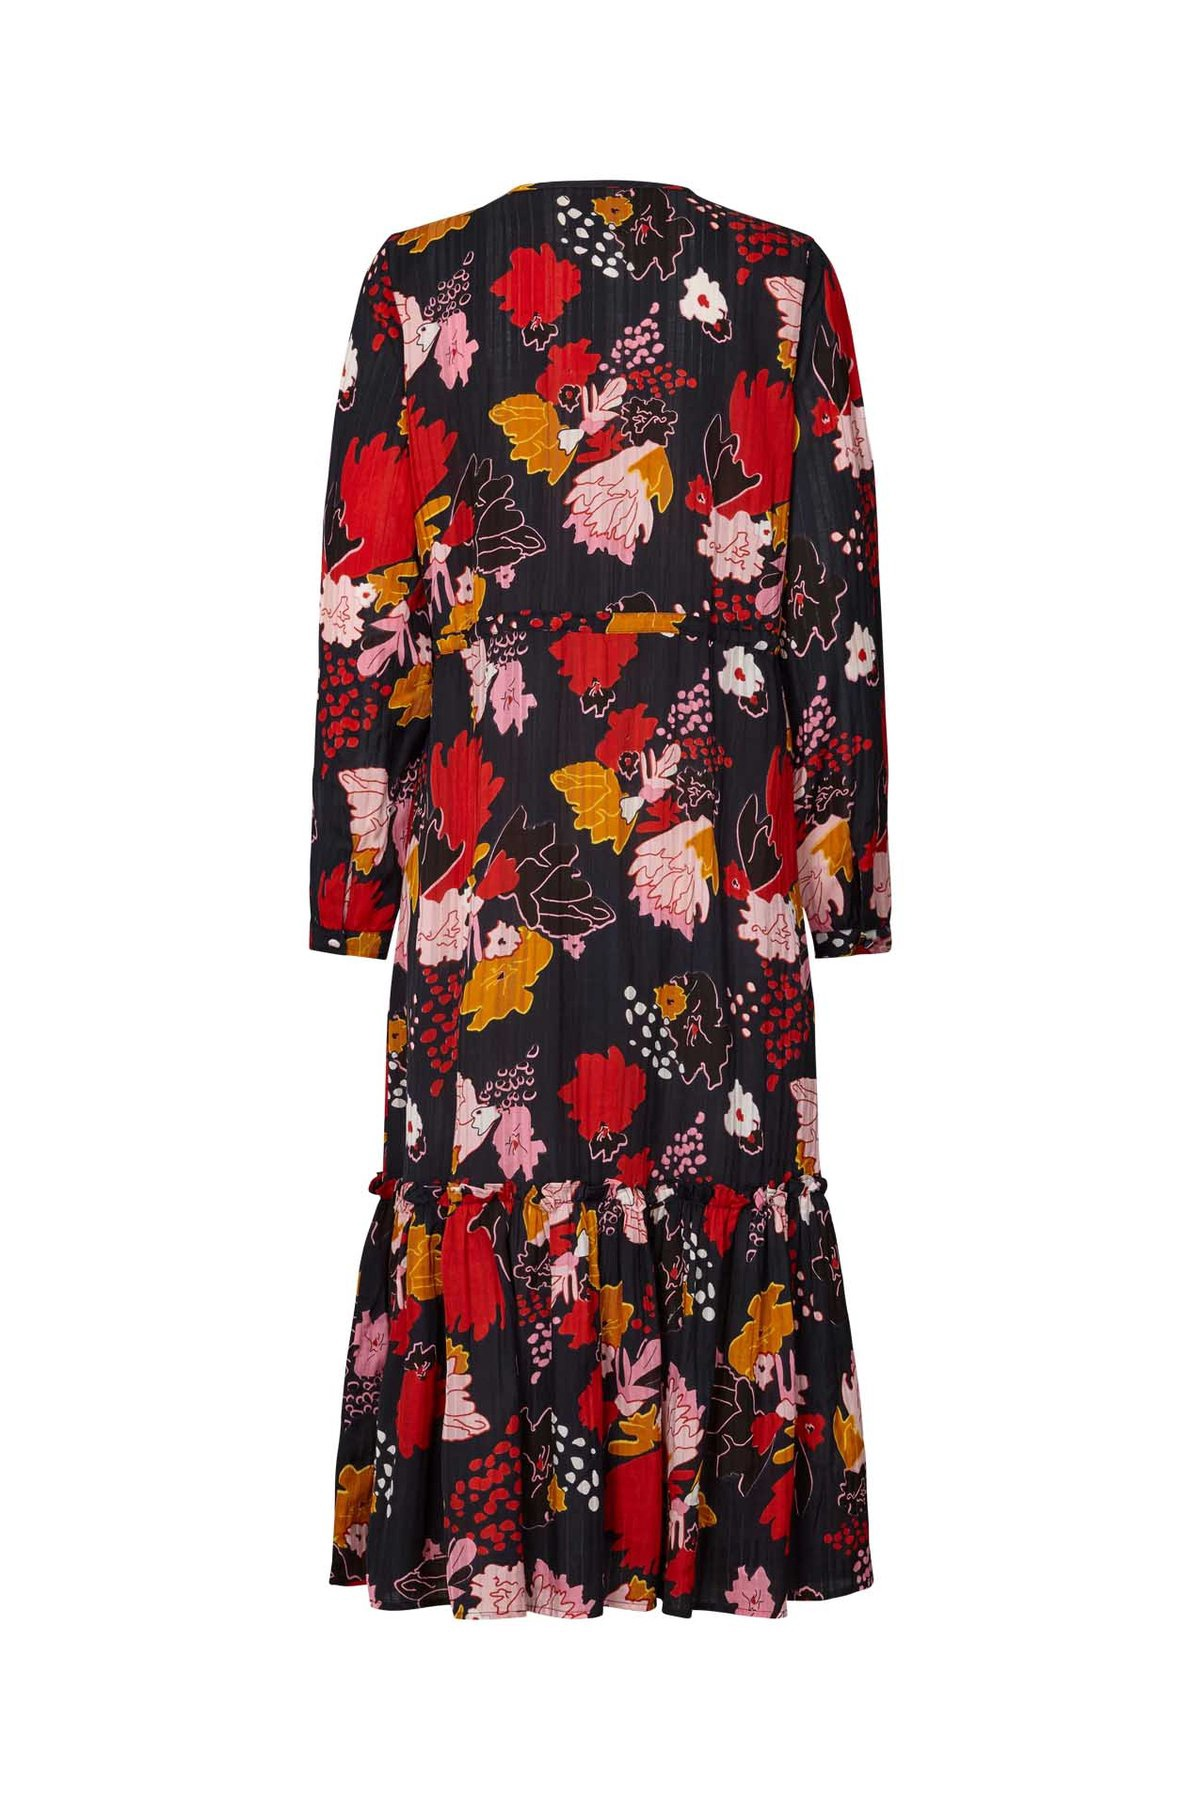 Anastasia Dress Floral - Rose and Lyons